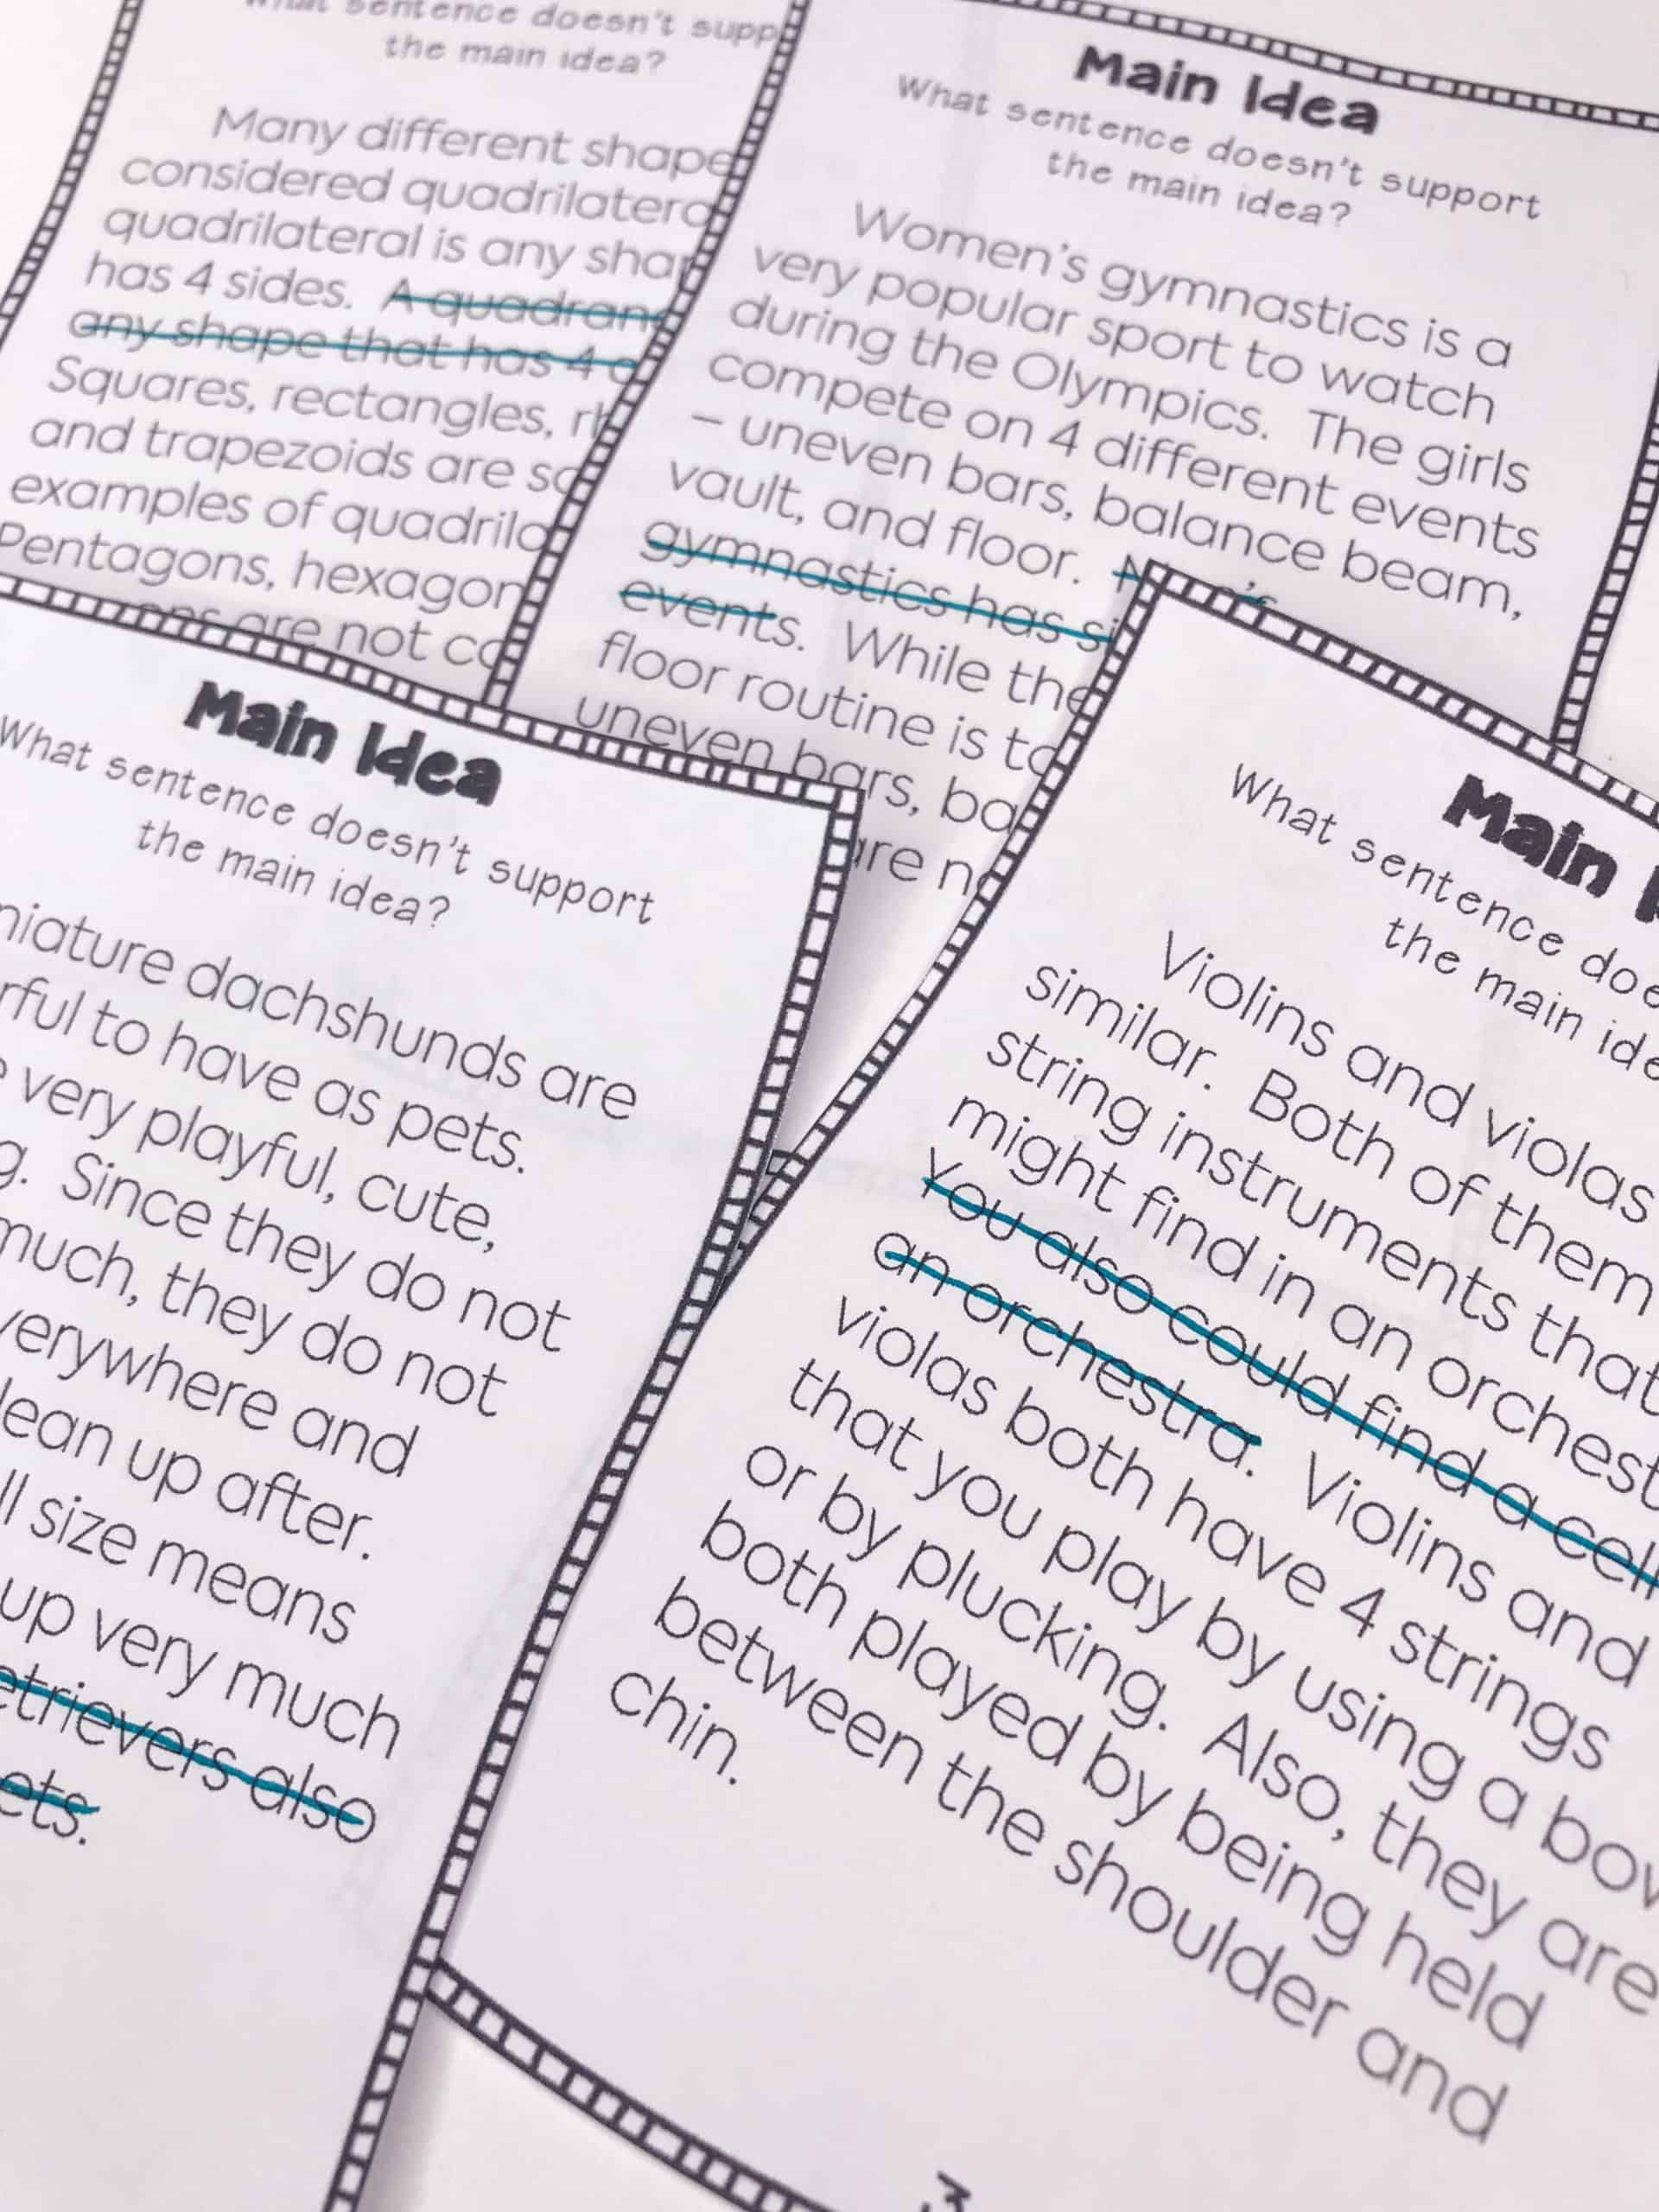 This main idea activity requires students to think about what details in a paragraph are not supporting the main idea